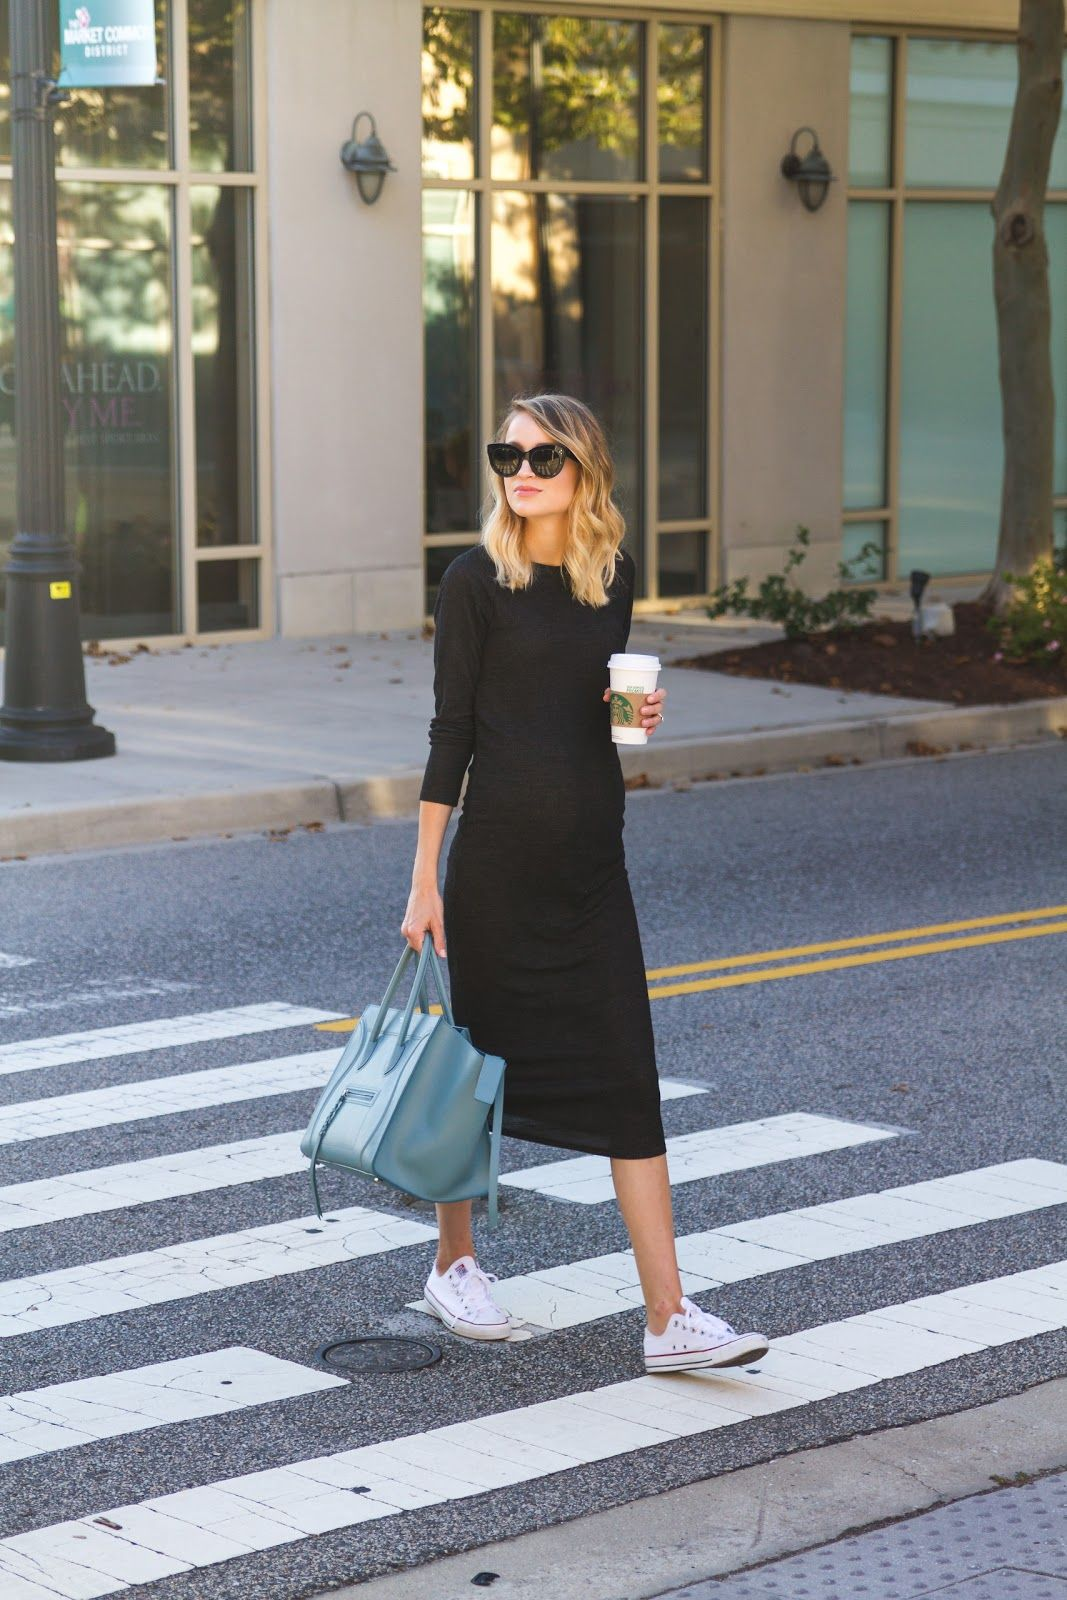 19cdddbed3e7 Knit Midi Dress and Sneakers (Little Blonde Book)